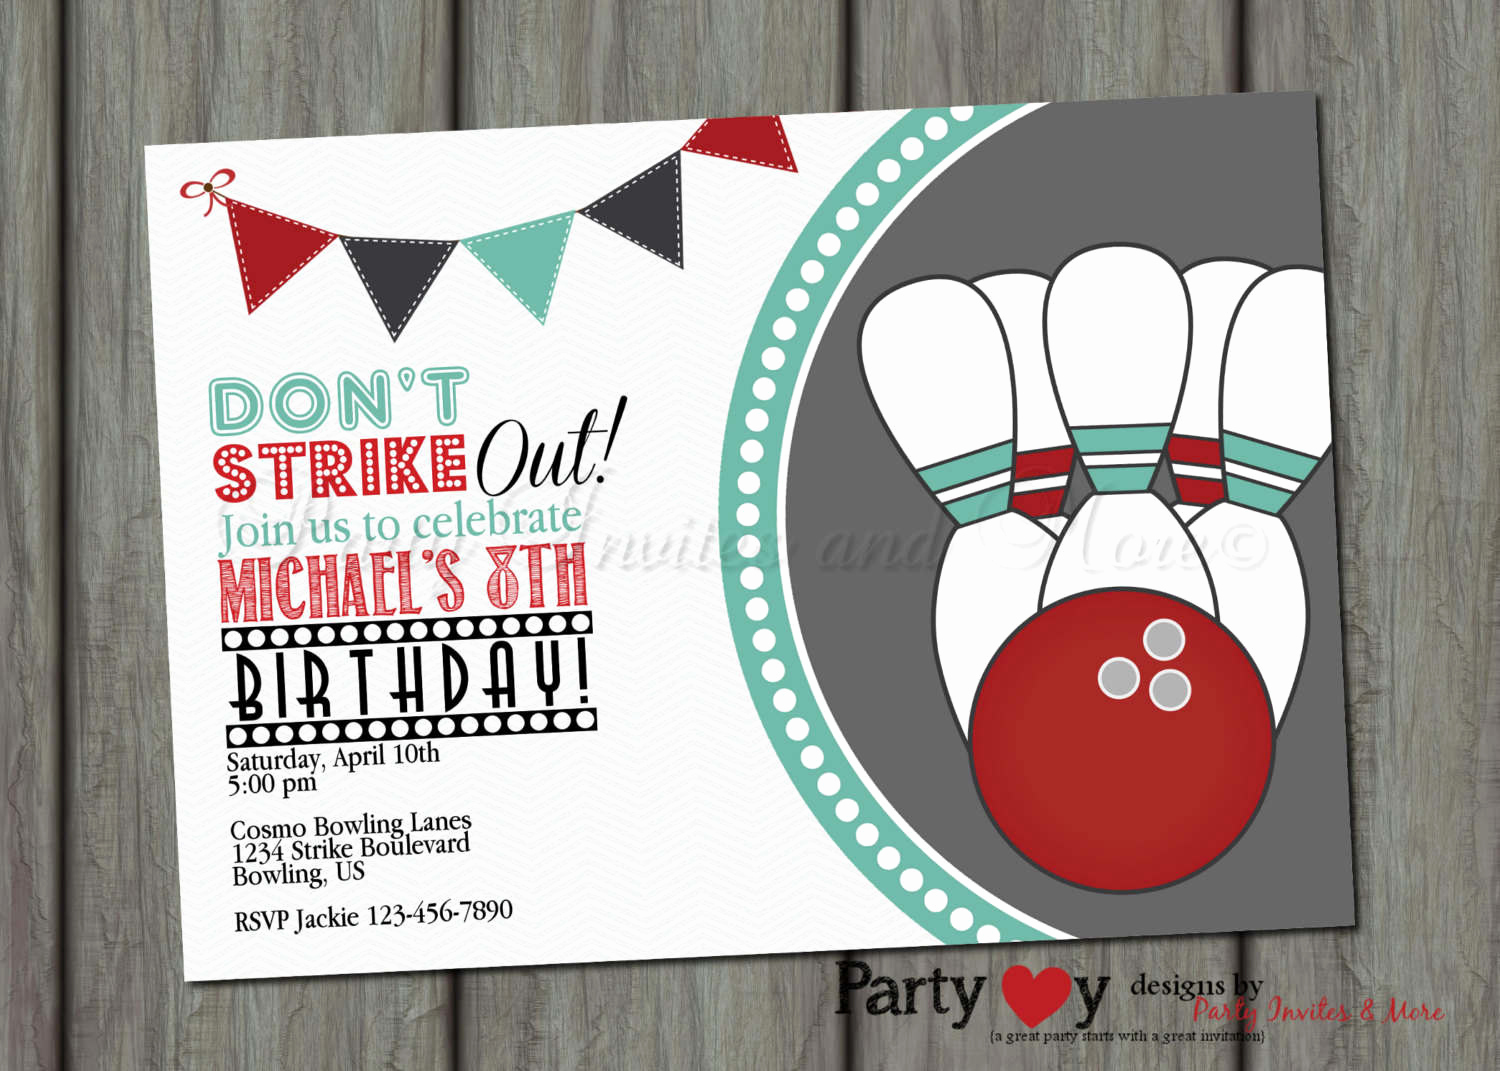 Bowling Party Invitation Templates Free Fresh Bowling Party Invitation Templates Free